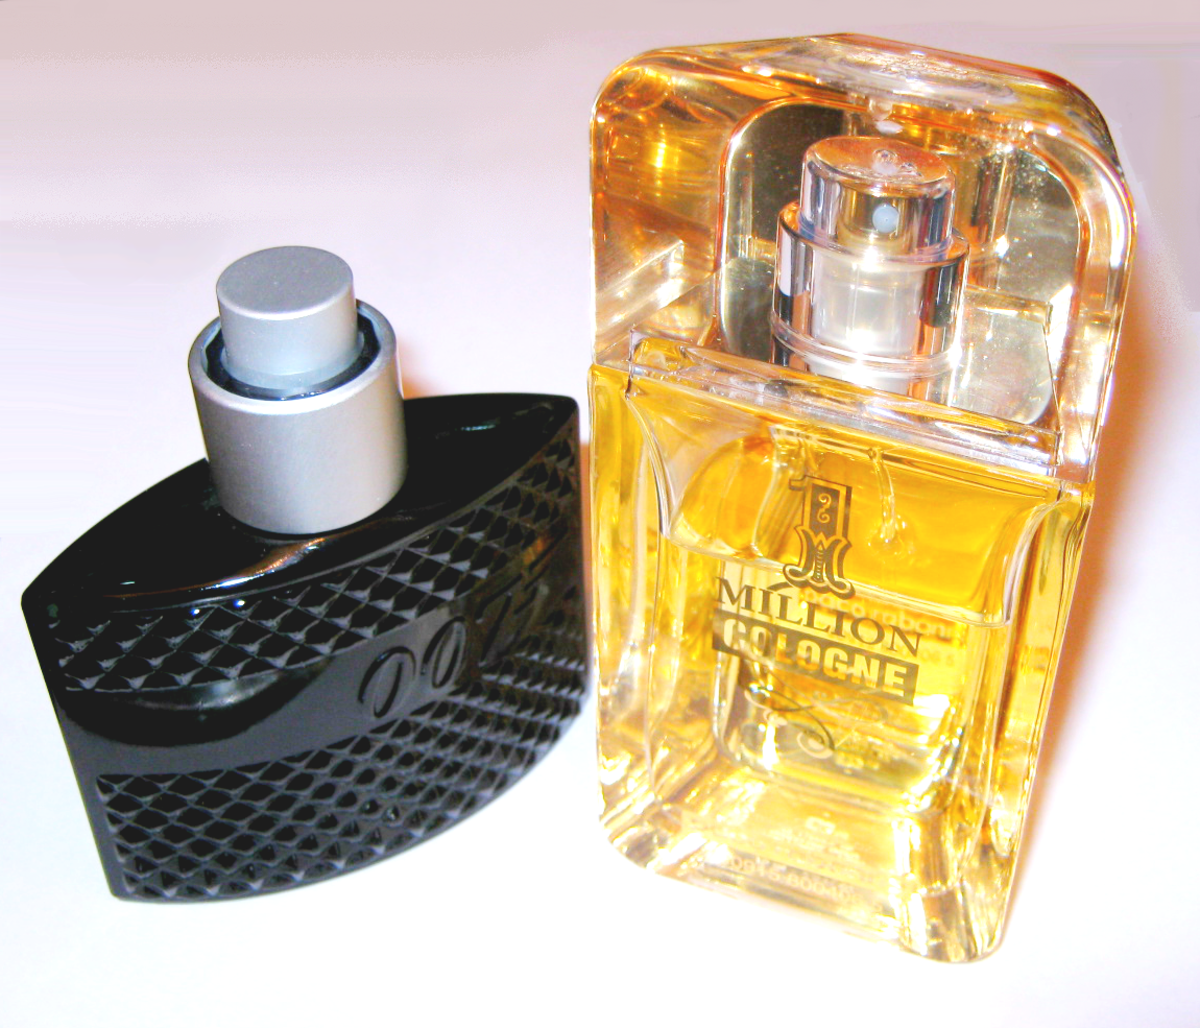 Cologne will only make you seem more attractive if you keep it subtle.